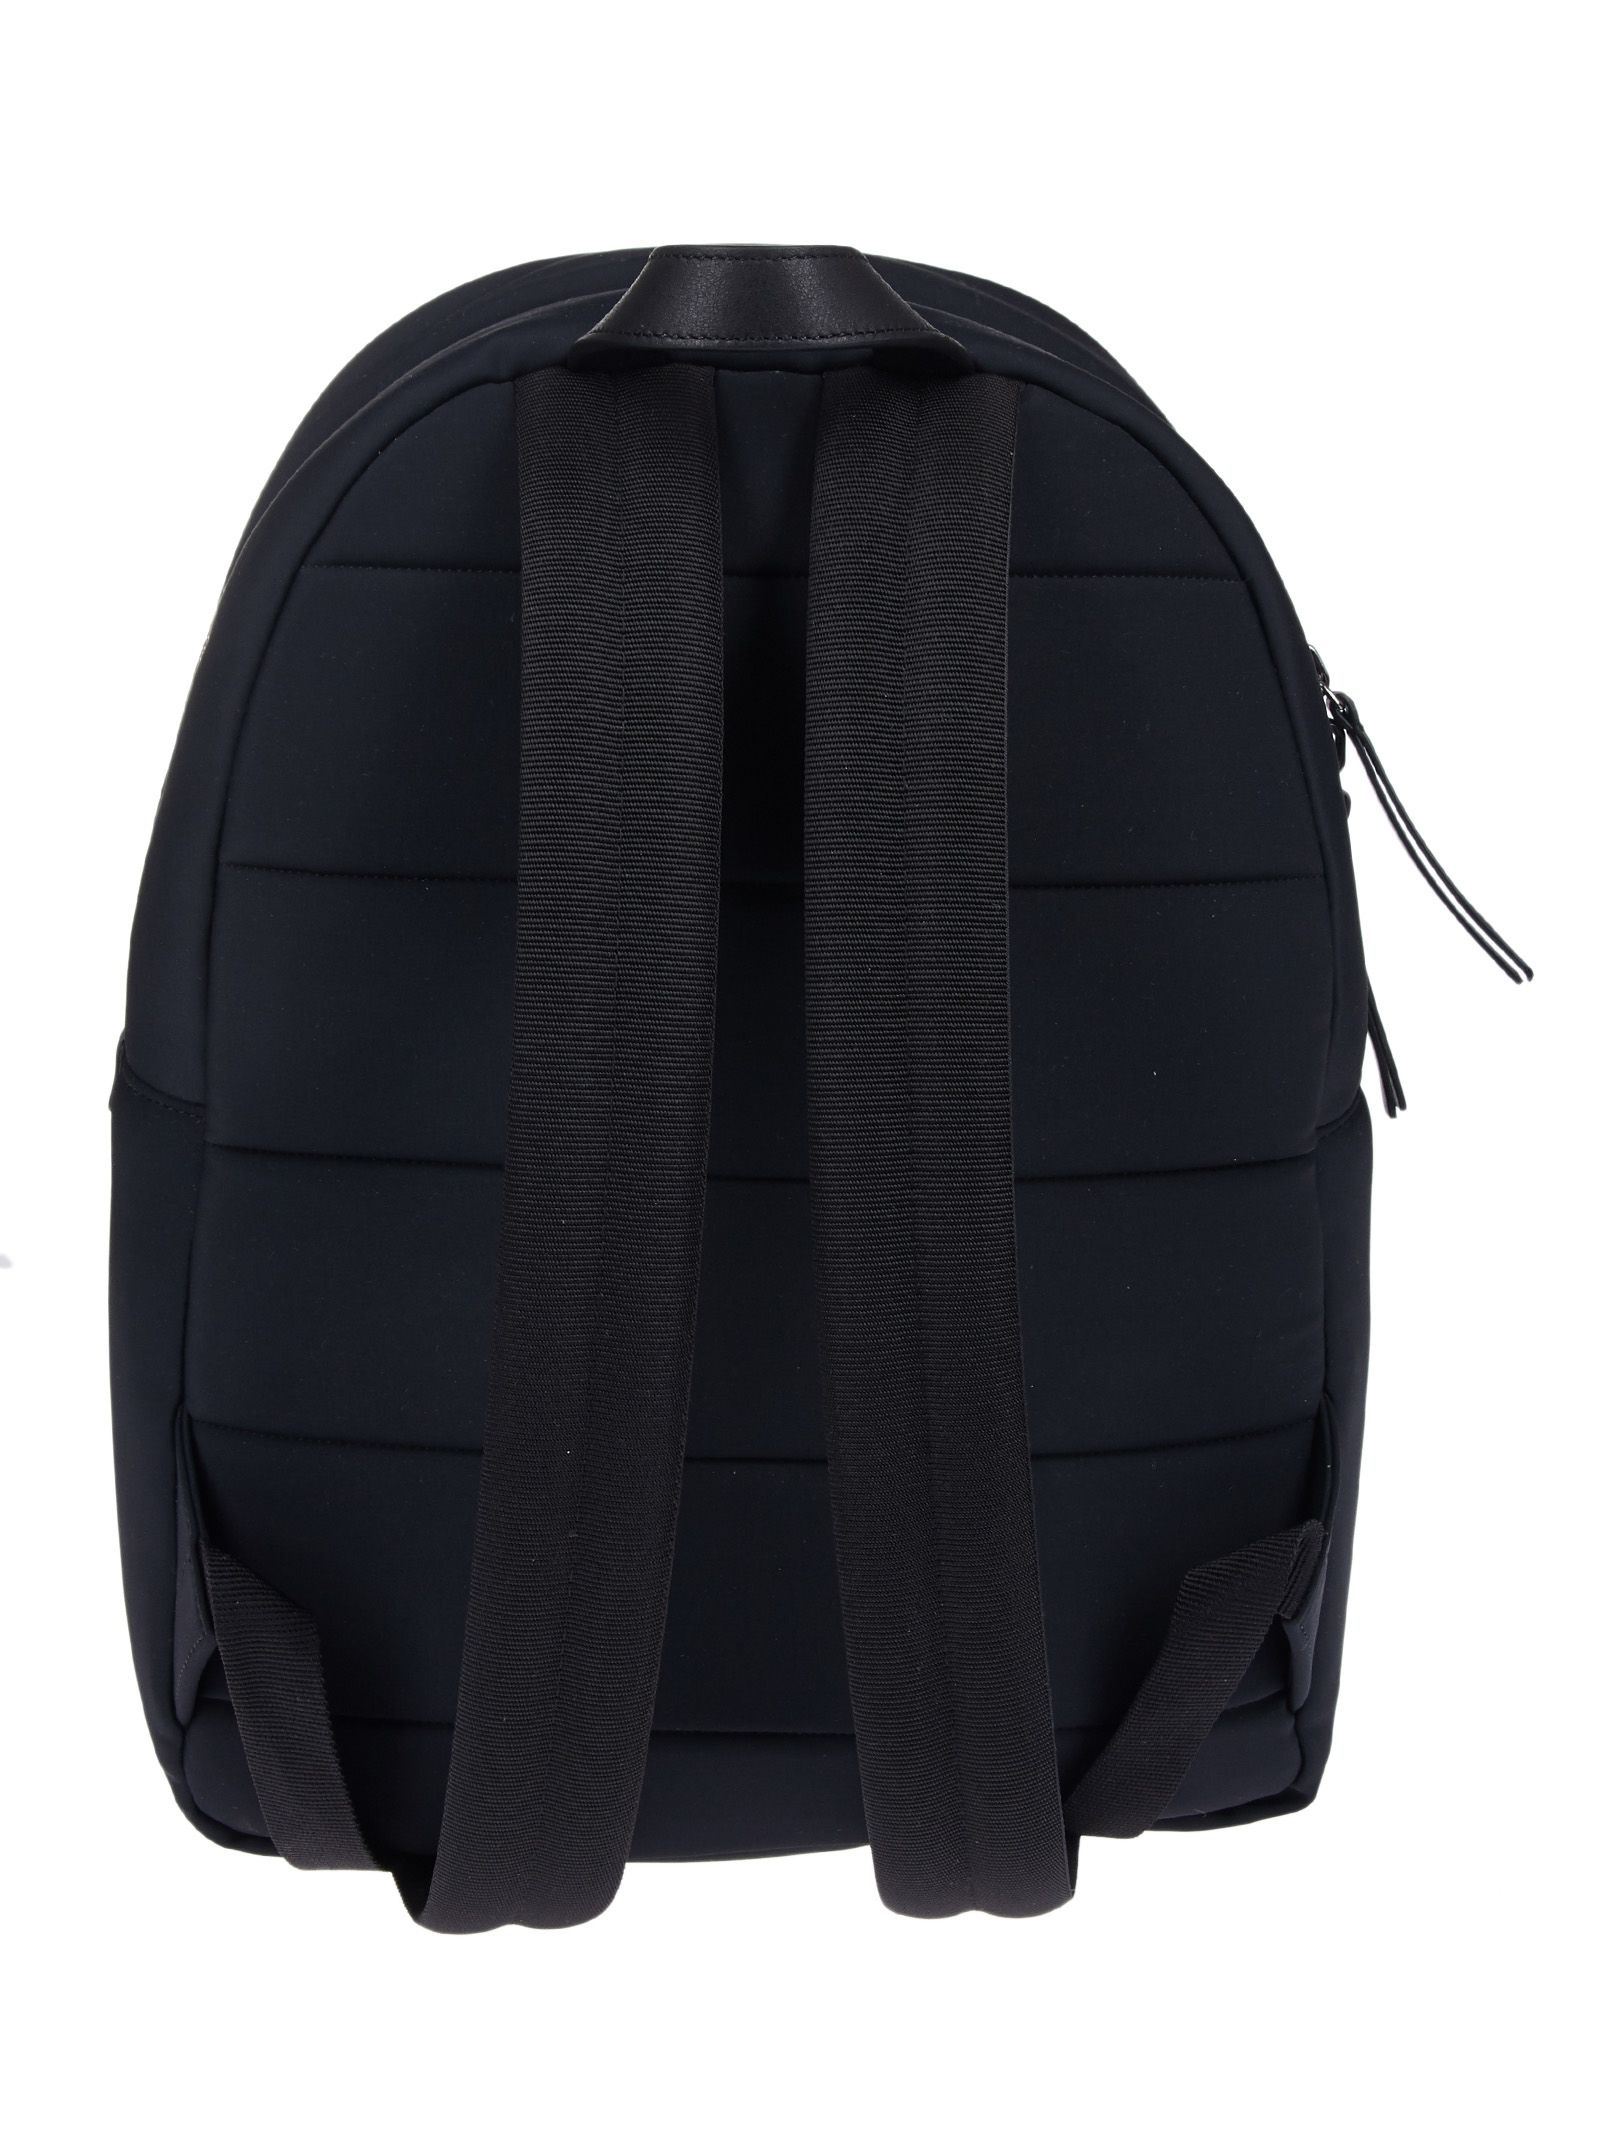 Free Shipping Extremely Clearance Visa Payment Black New George backpack Moncler From China Cheap Price Good Selling Sale Online Outlet Brand New Unisex PjFks55Ba